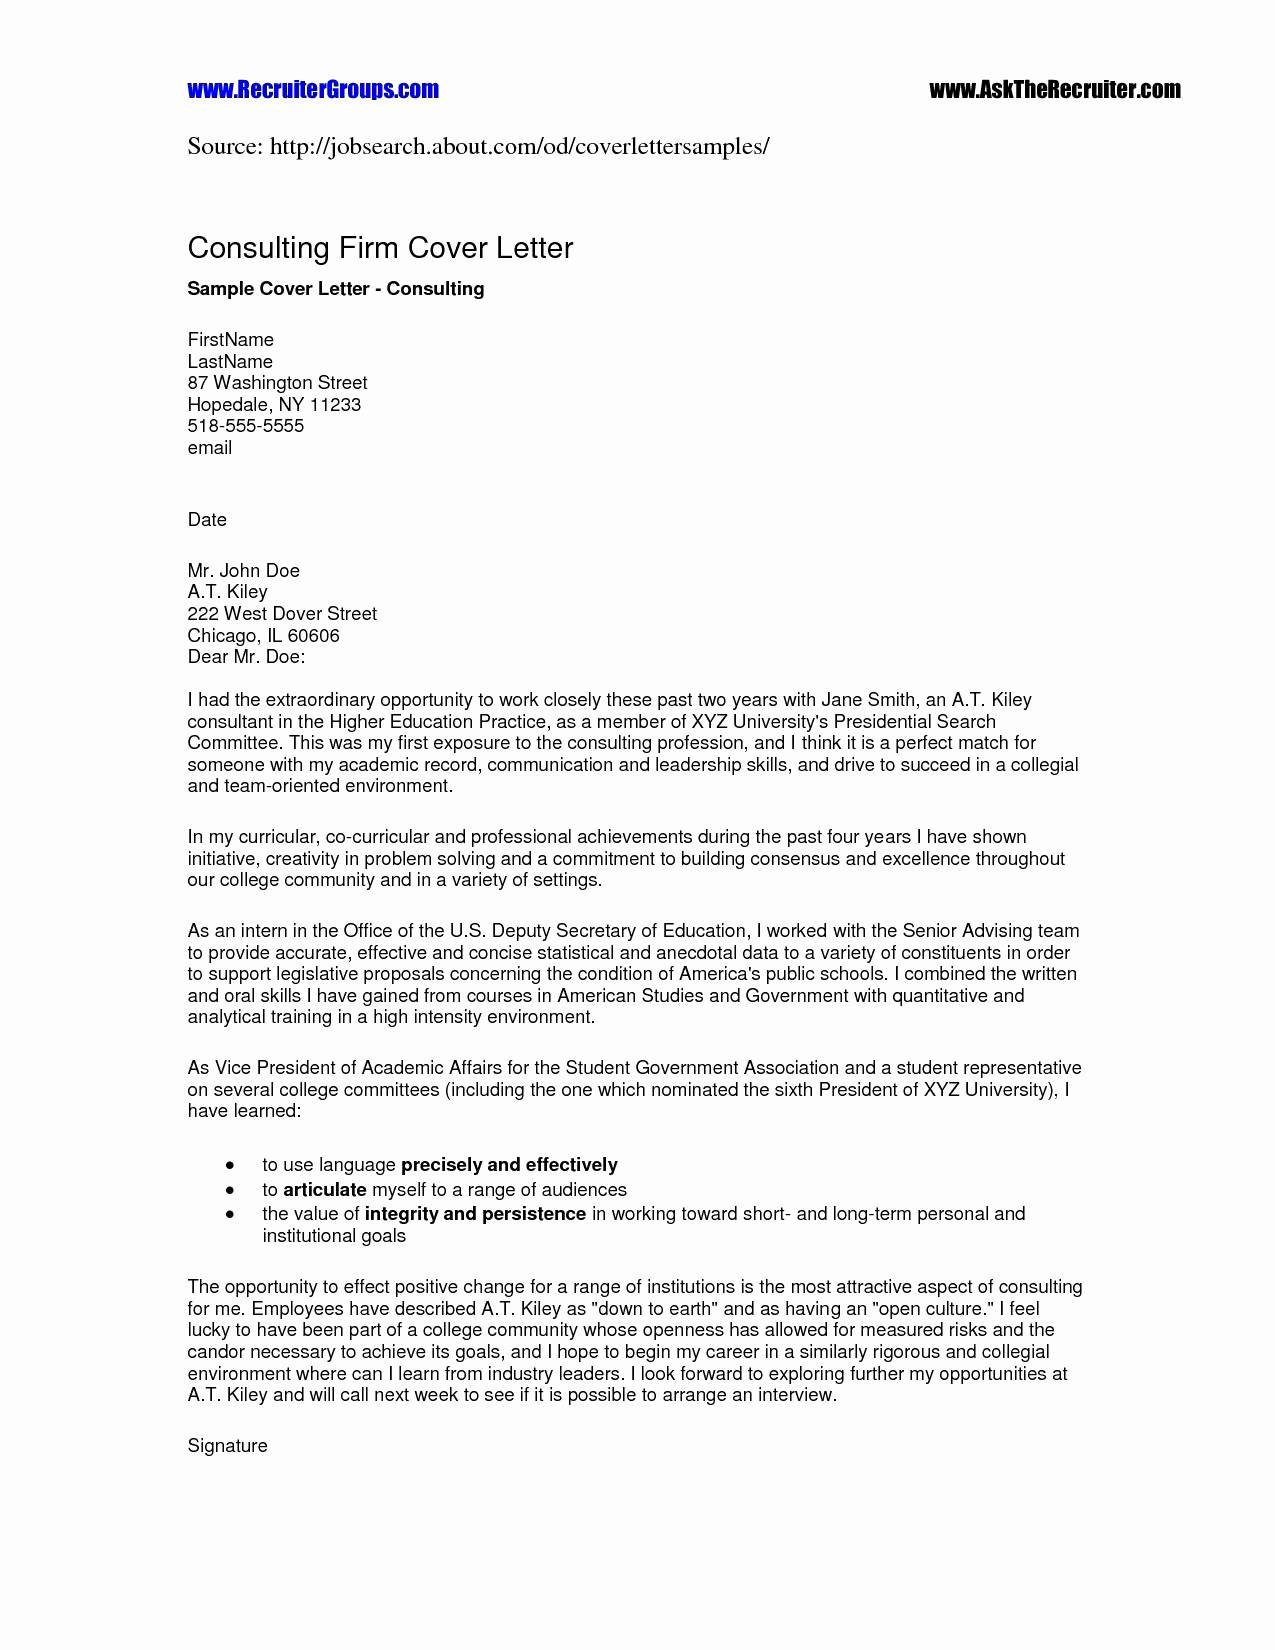 Research Coordinator Resume - Clinical Trial Close Out Letter Template Examples